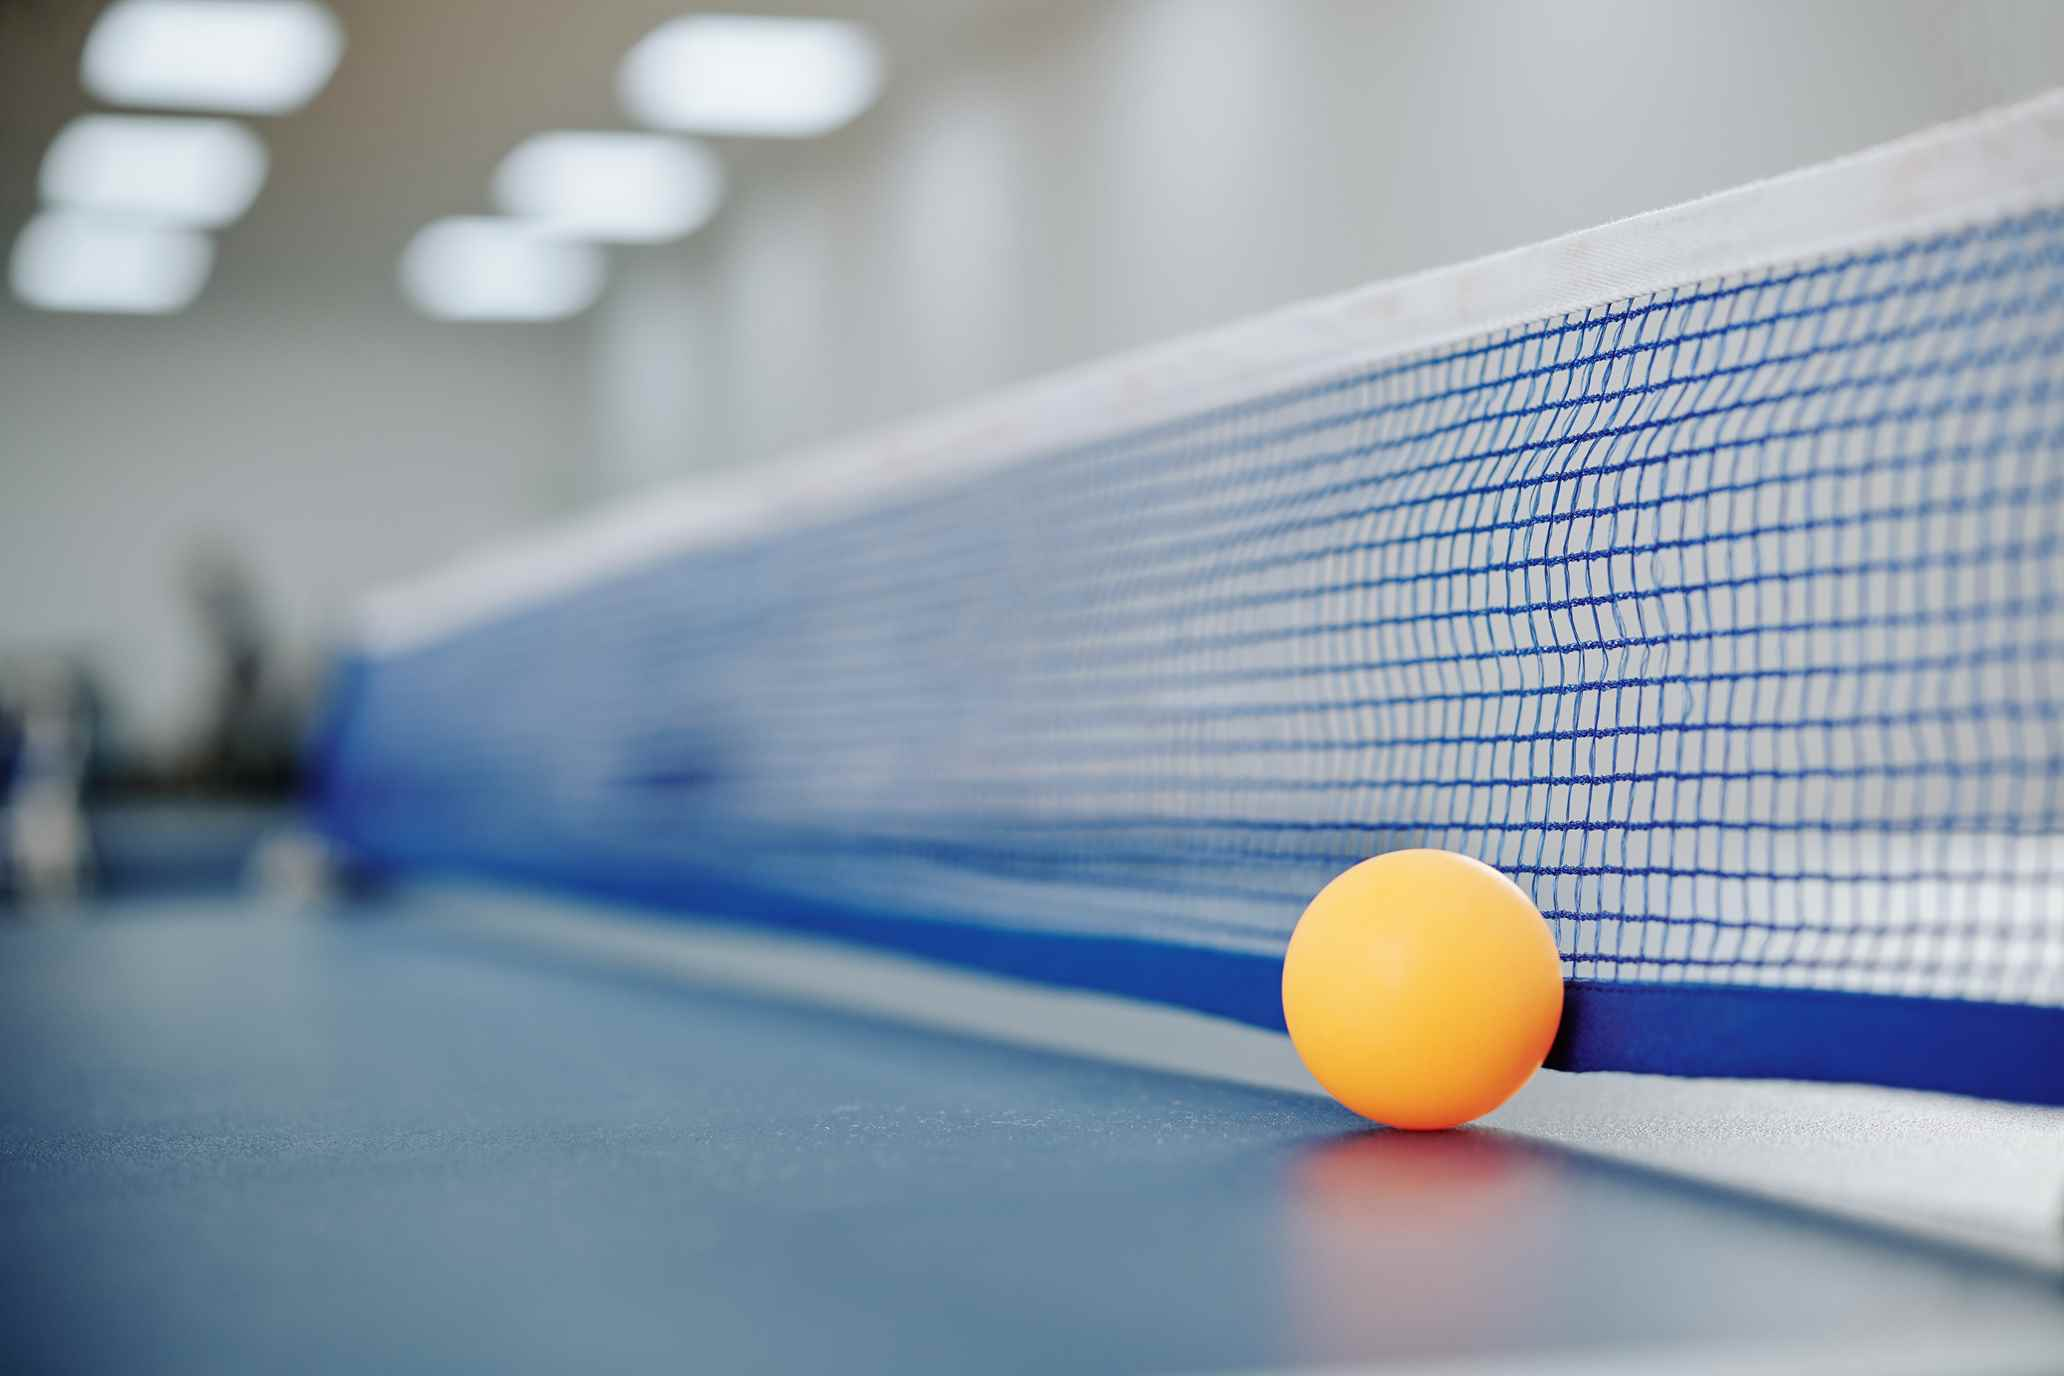 How to pick the best Table Tennis ball?